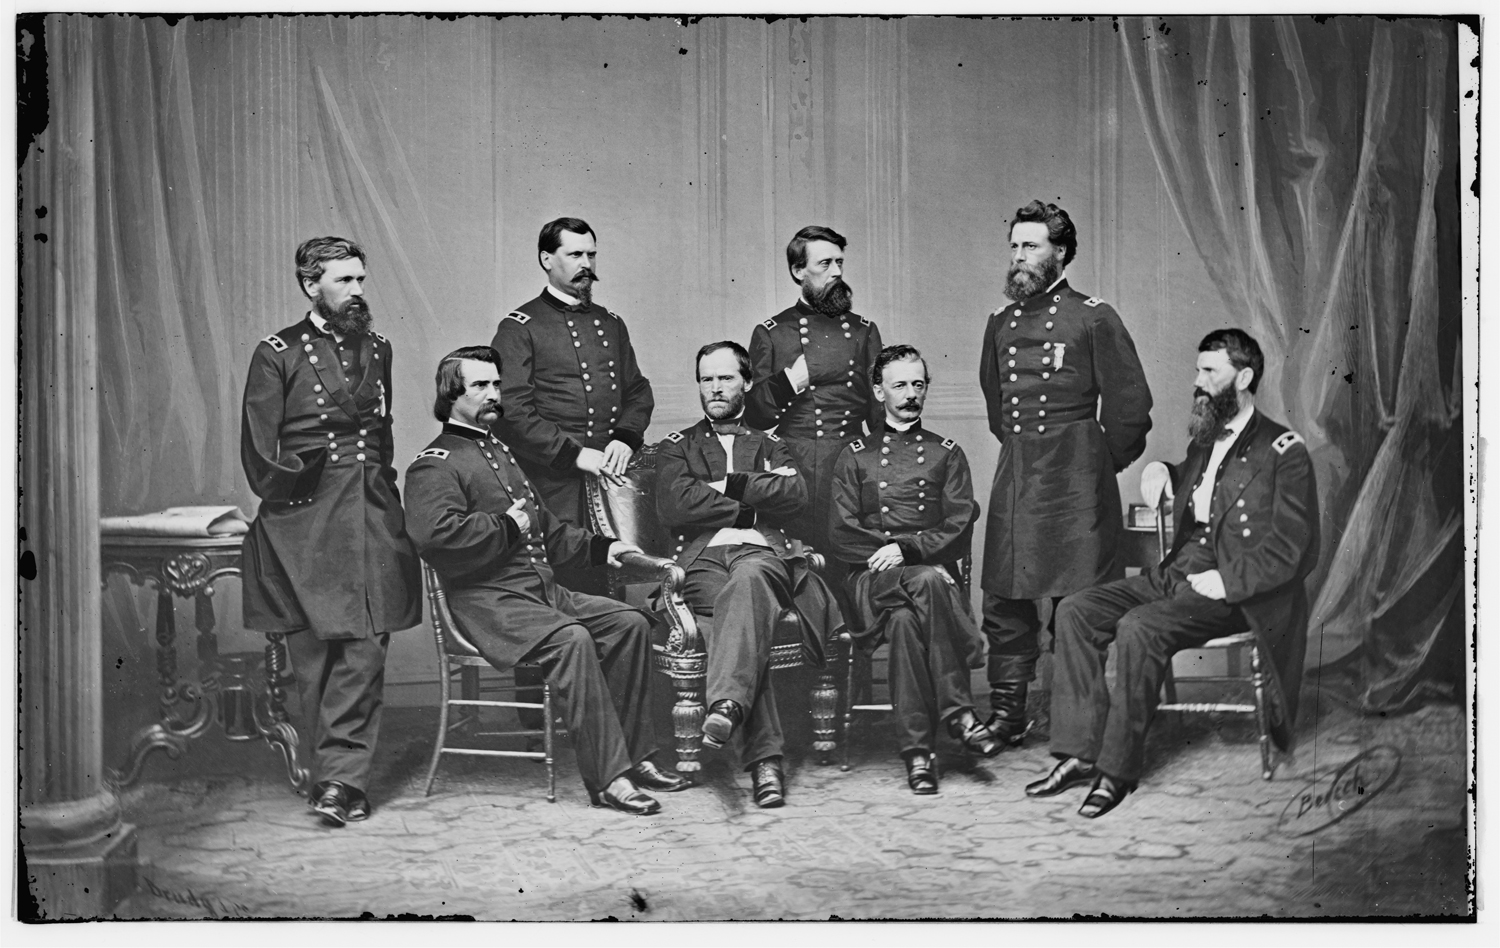 Civil War Generals, c. 1865                               Generally regarded as the world's first commercially successful photojournalist, Mathew Brady was also one of the medium's most accomplished manipulators. In this group portrait of William Tecumseh Sherman and his top officers, he added one figure. For the record, the men are, standing, from left: Oliver Otis Howard, William Babcock Hazen, Jefferson Columbus Davis and Joseph Anthony Mower; seated, from left: John Alexander Logan, Sherman, Henry Warner Slocum and Francis P. Blair.